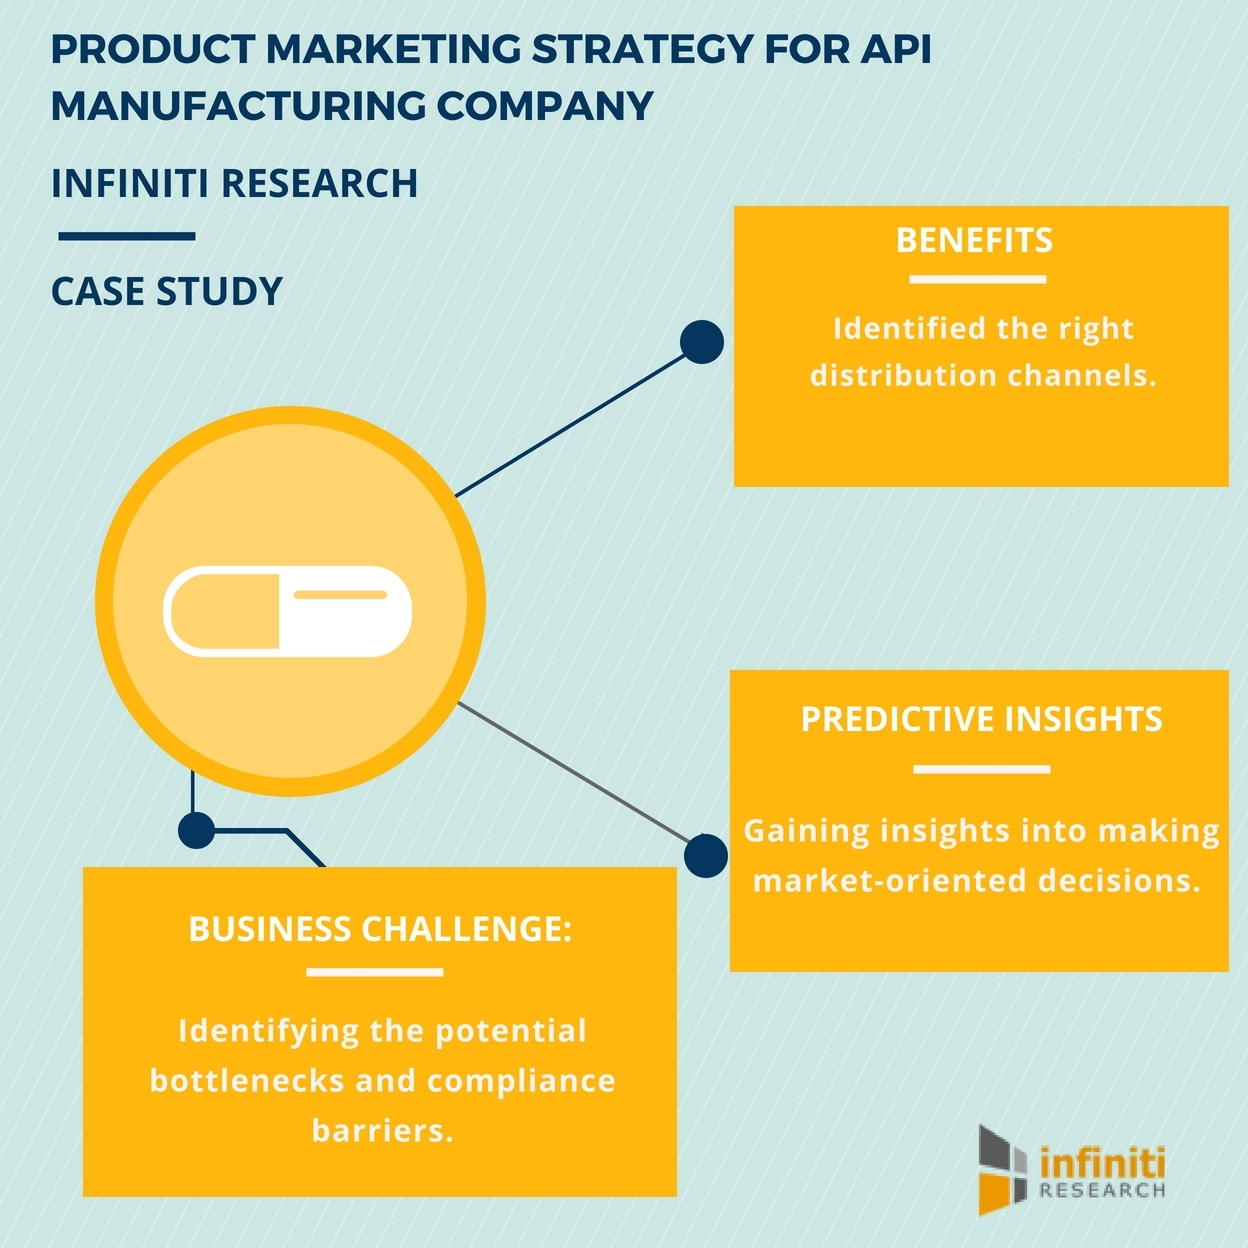 Product Marketing Strategy for an API Manufacturing Company: Tips to